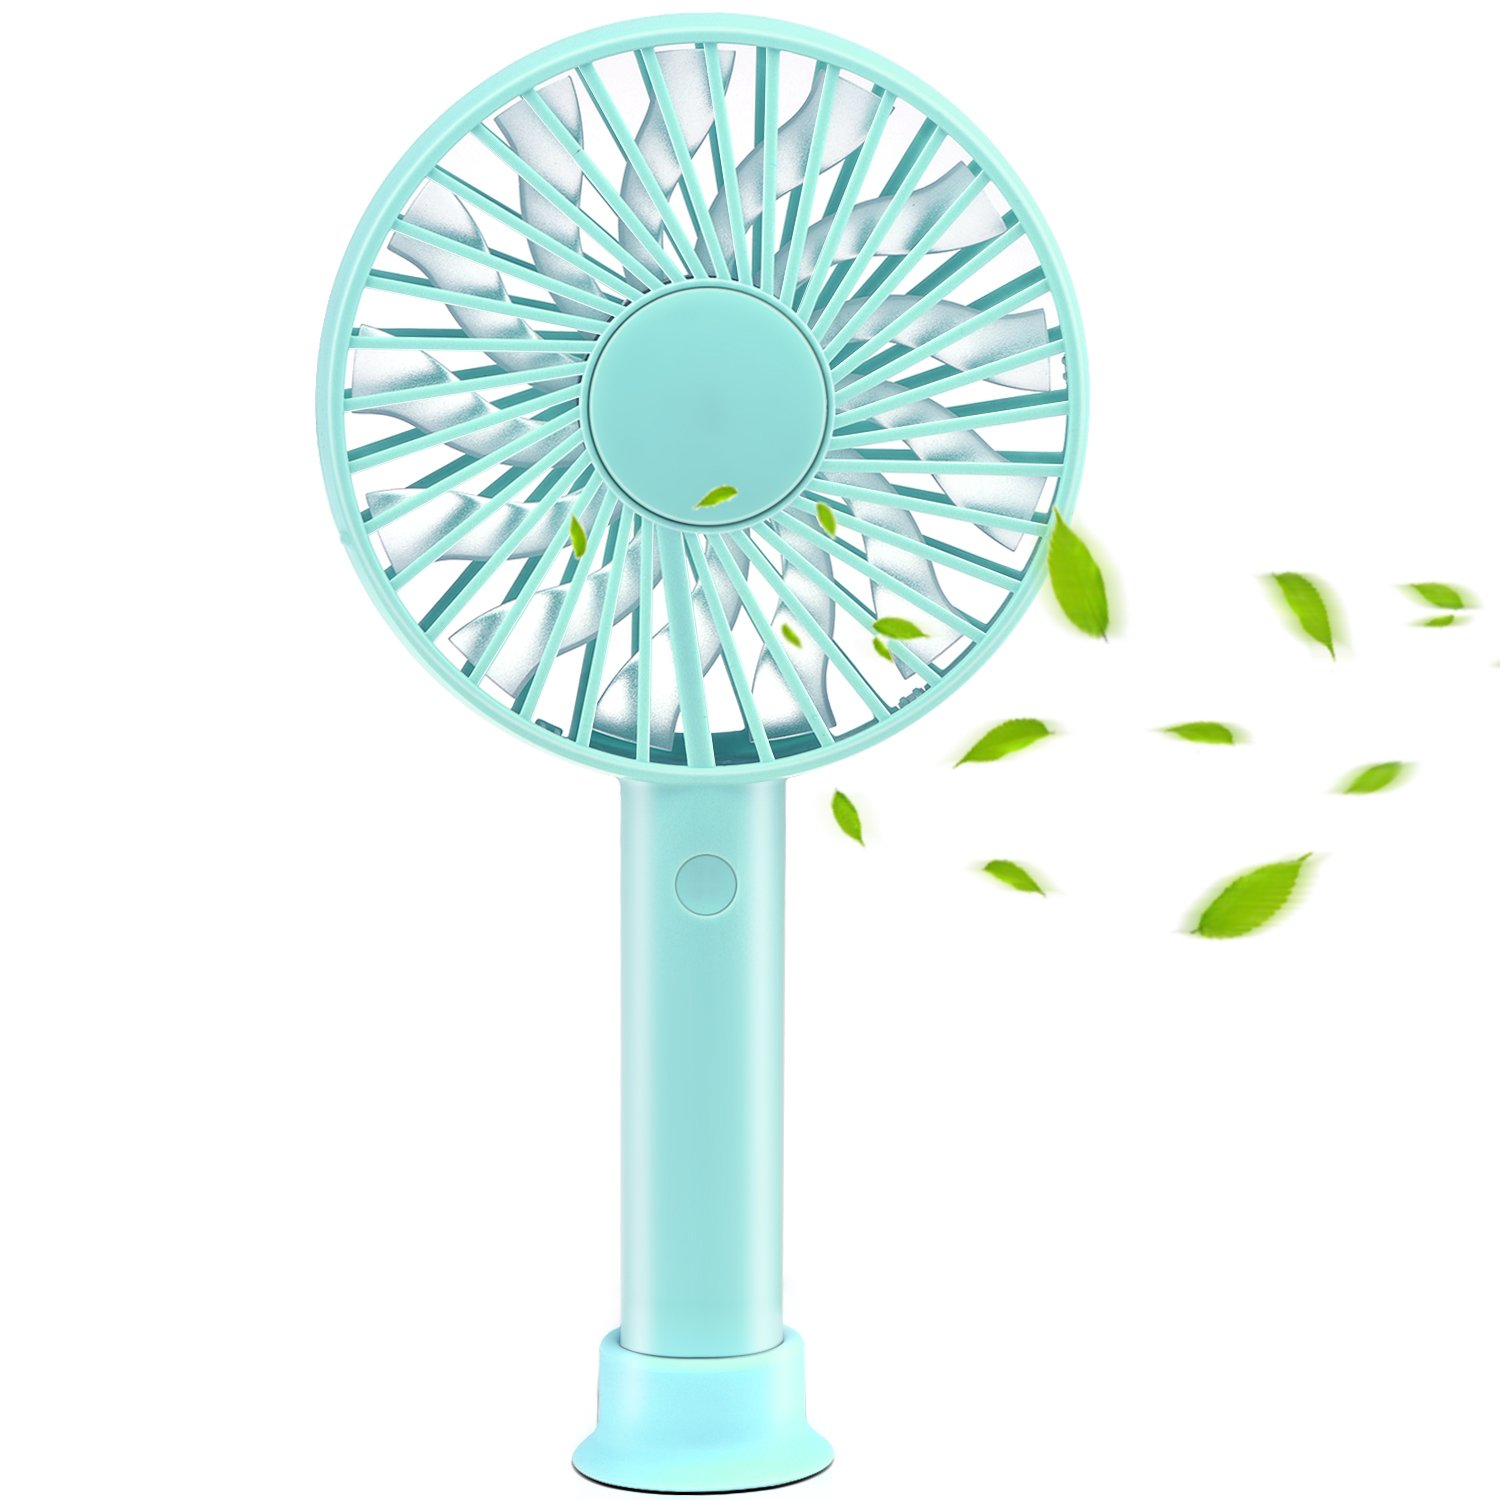 TinMiu Portable Fan Personal Handheld Fan with Removable Suction Cup Base 3 Speed USB Rechargeable Silent Design Super Battery for Home Dormitory Office Outdoors and Travel